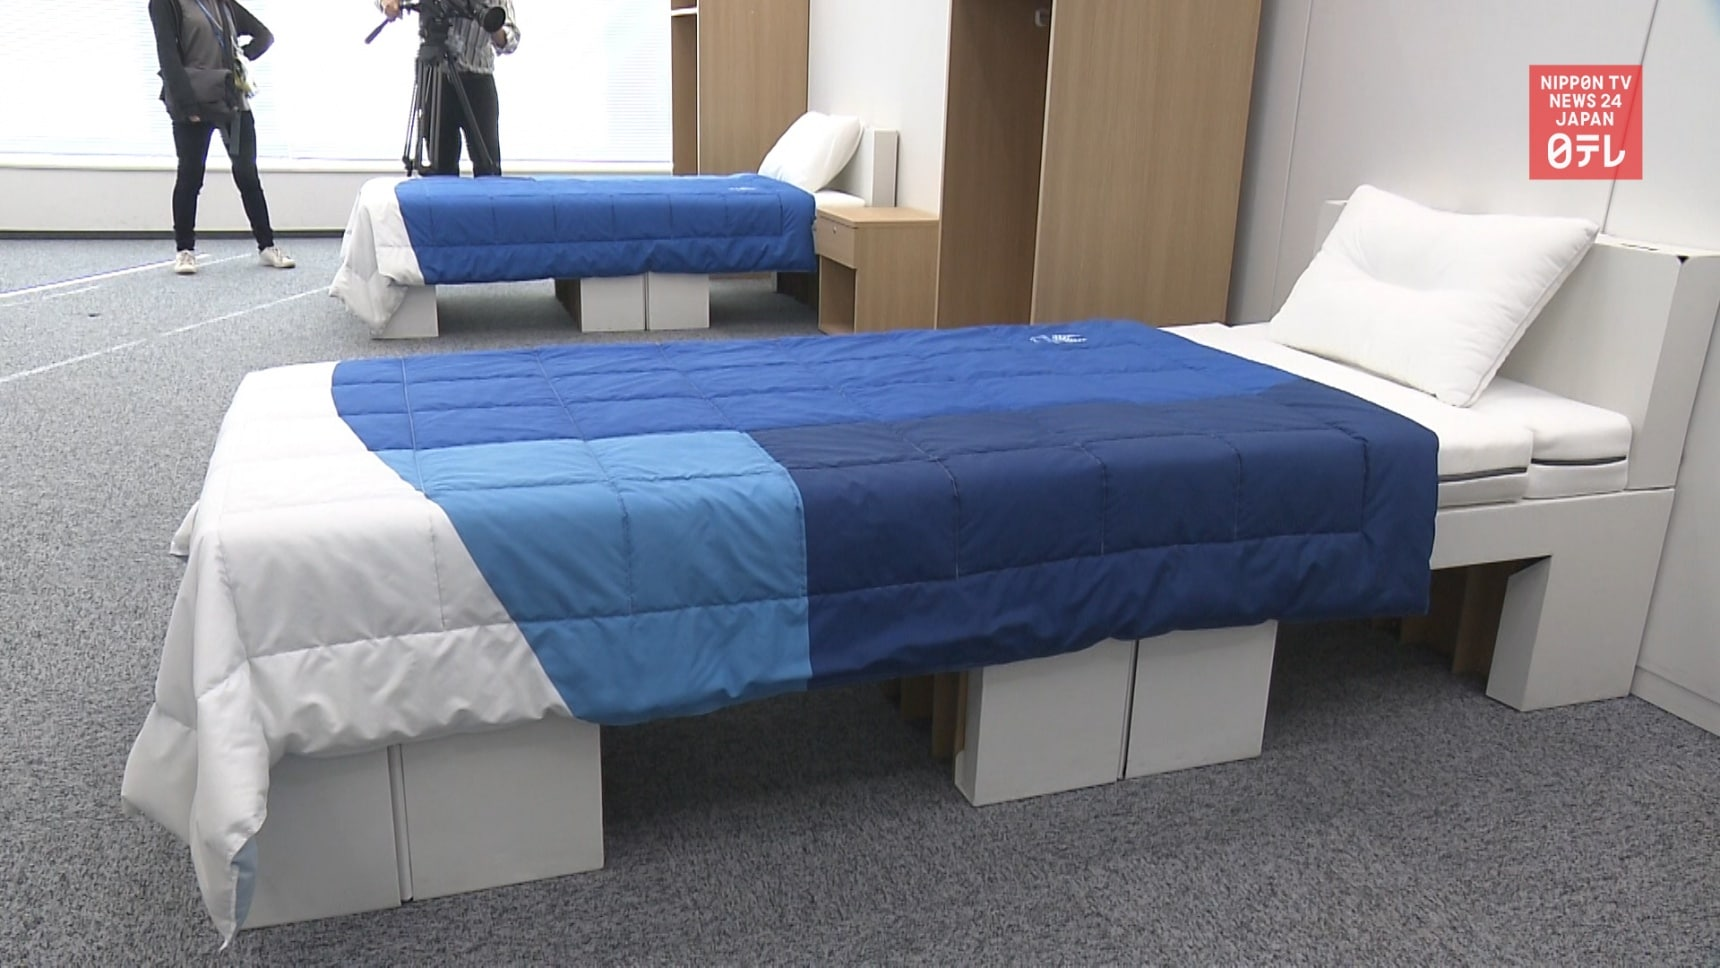 Cardboard Beds for Olympians Revealed